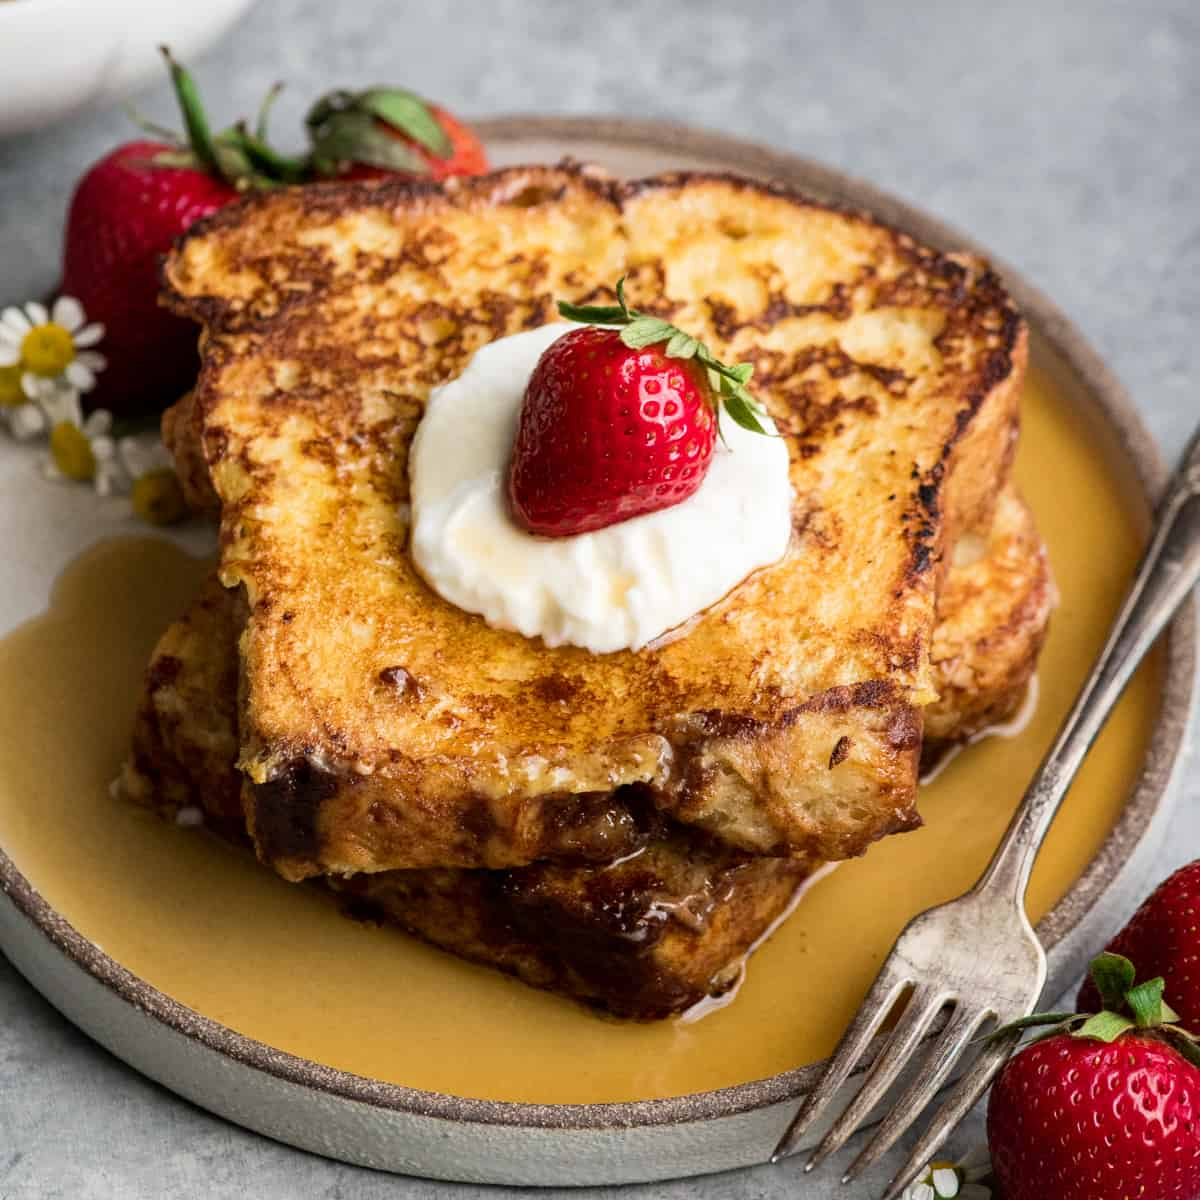 front view of two pieces of french toast on a plate with whipped cream and syrup